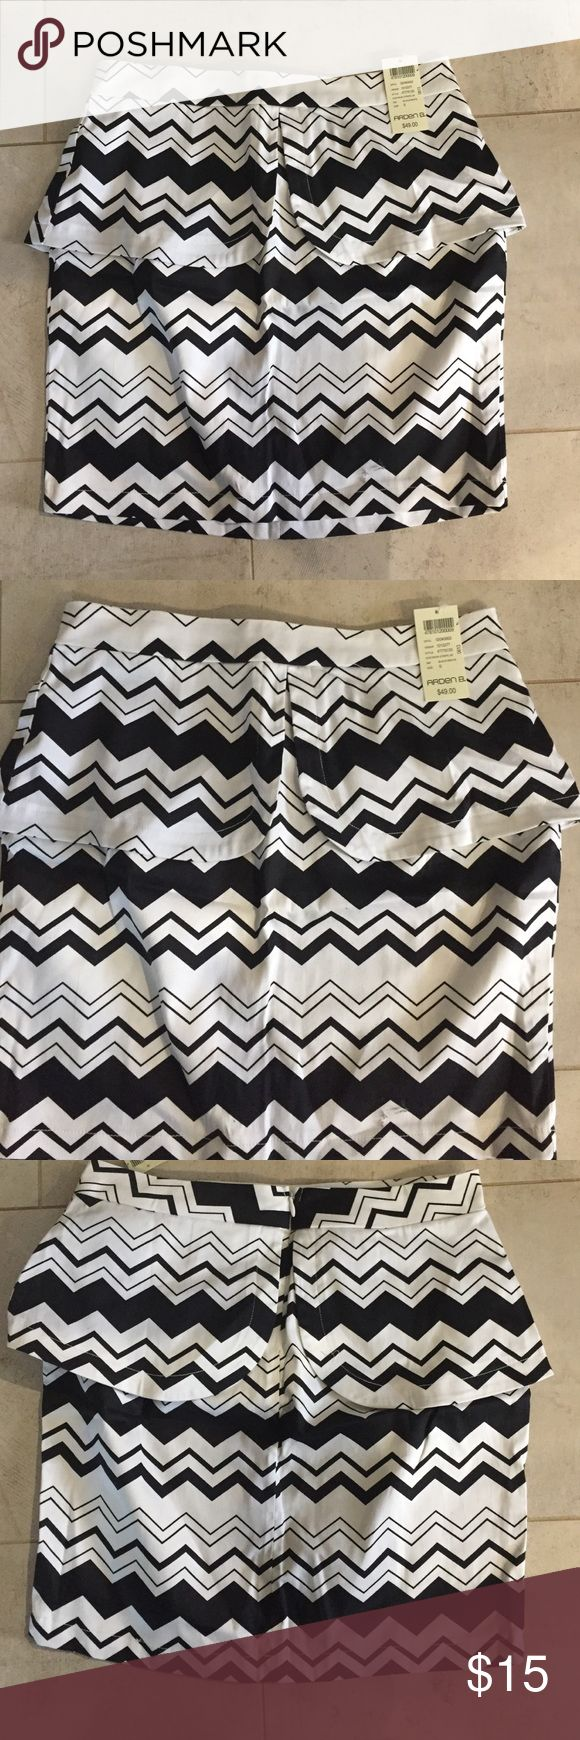 NWT black and white peplum skirt Never worn. Black and white peplum skirt. Size small. Purchased from Arden b Arden B Skirts Mini